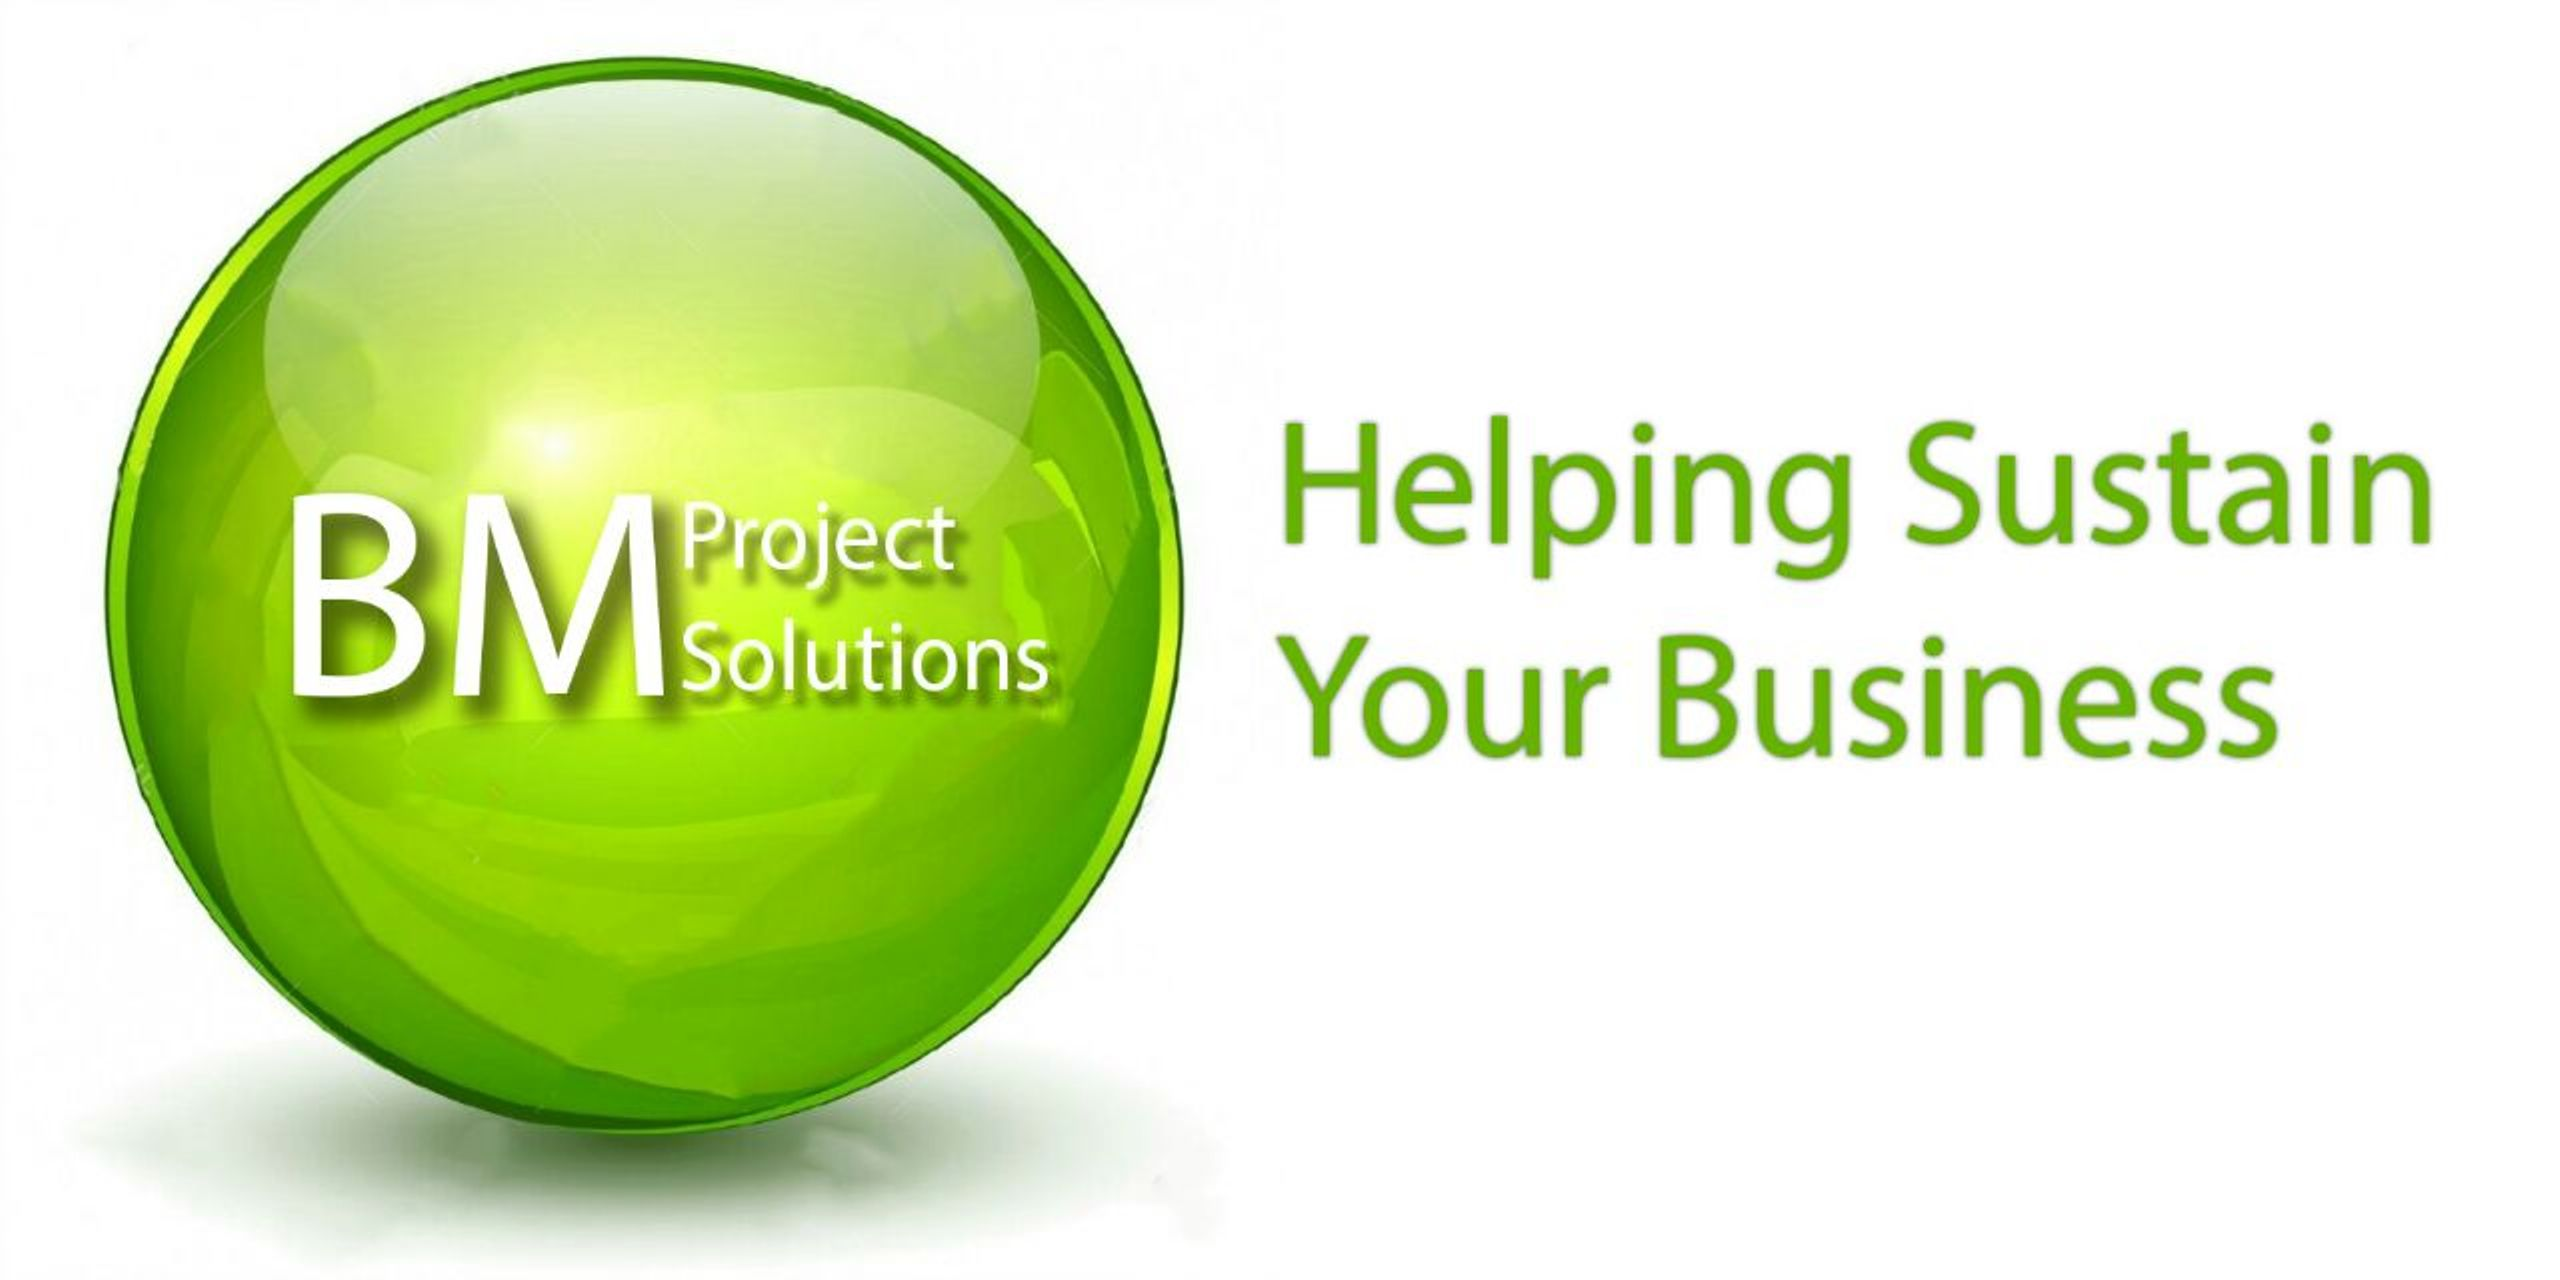 BM Project Solutions